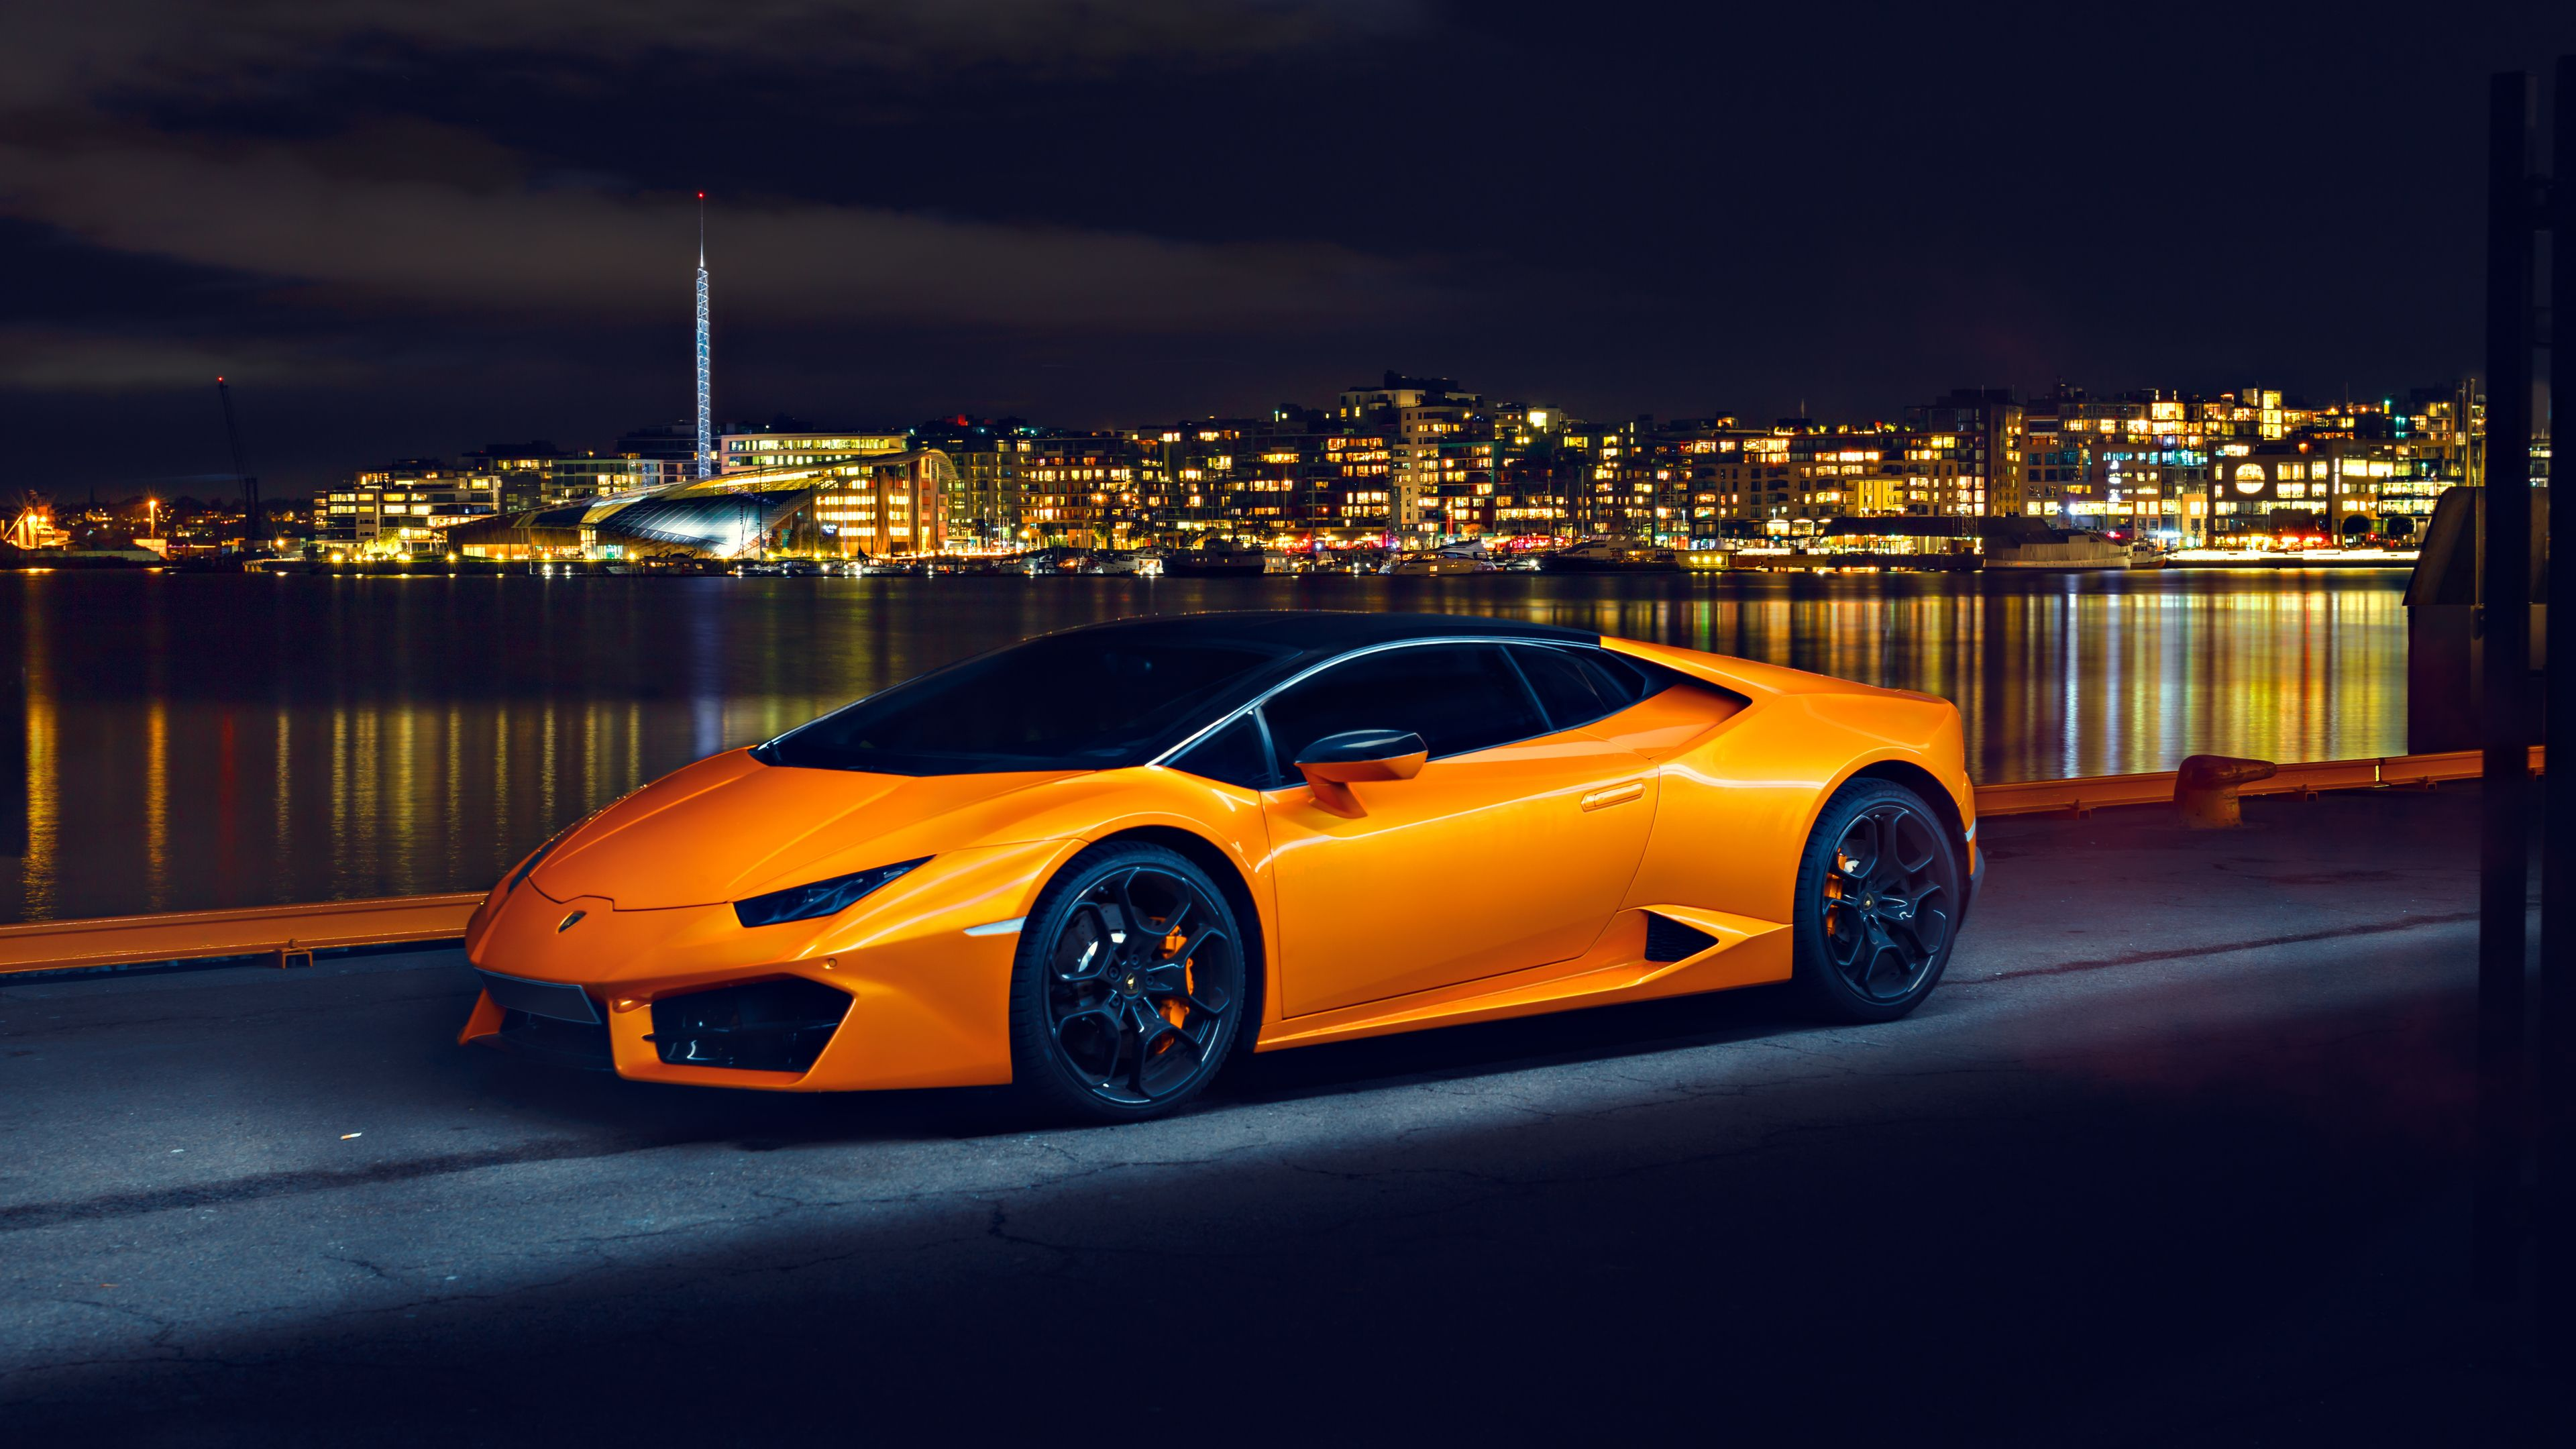 Lamborghini Huracan Lp580 Night Photoshoot 4k Wallpaper Lamborghini Wallpapers Lamborghini Huracan Wallpapers Lamborghini Huracan Lamborghini Cars Super Cars